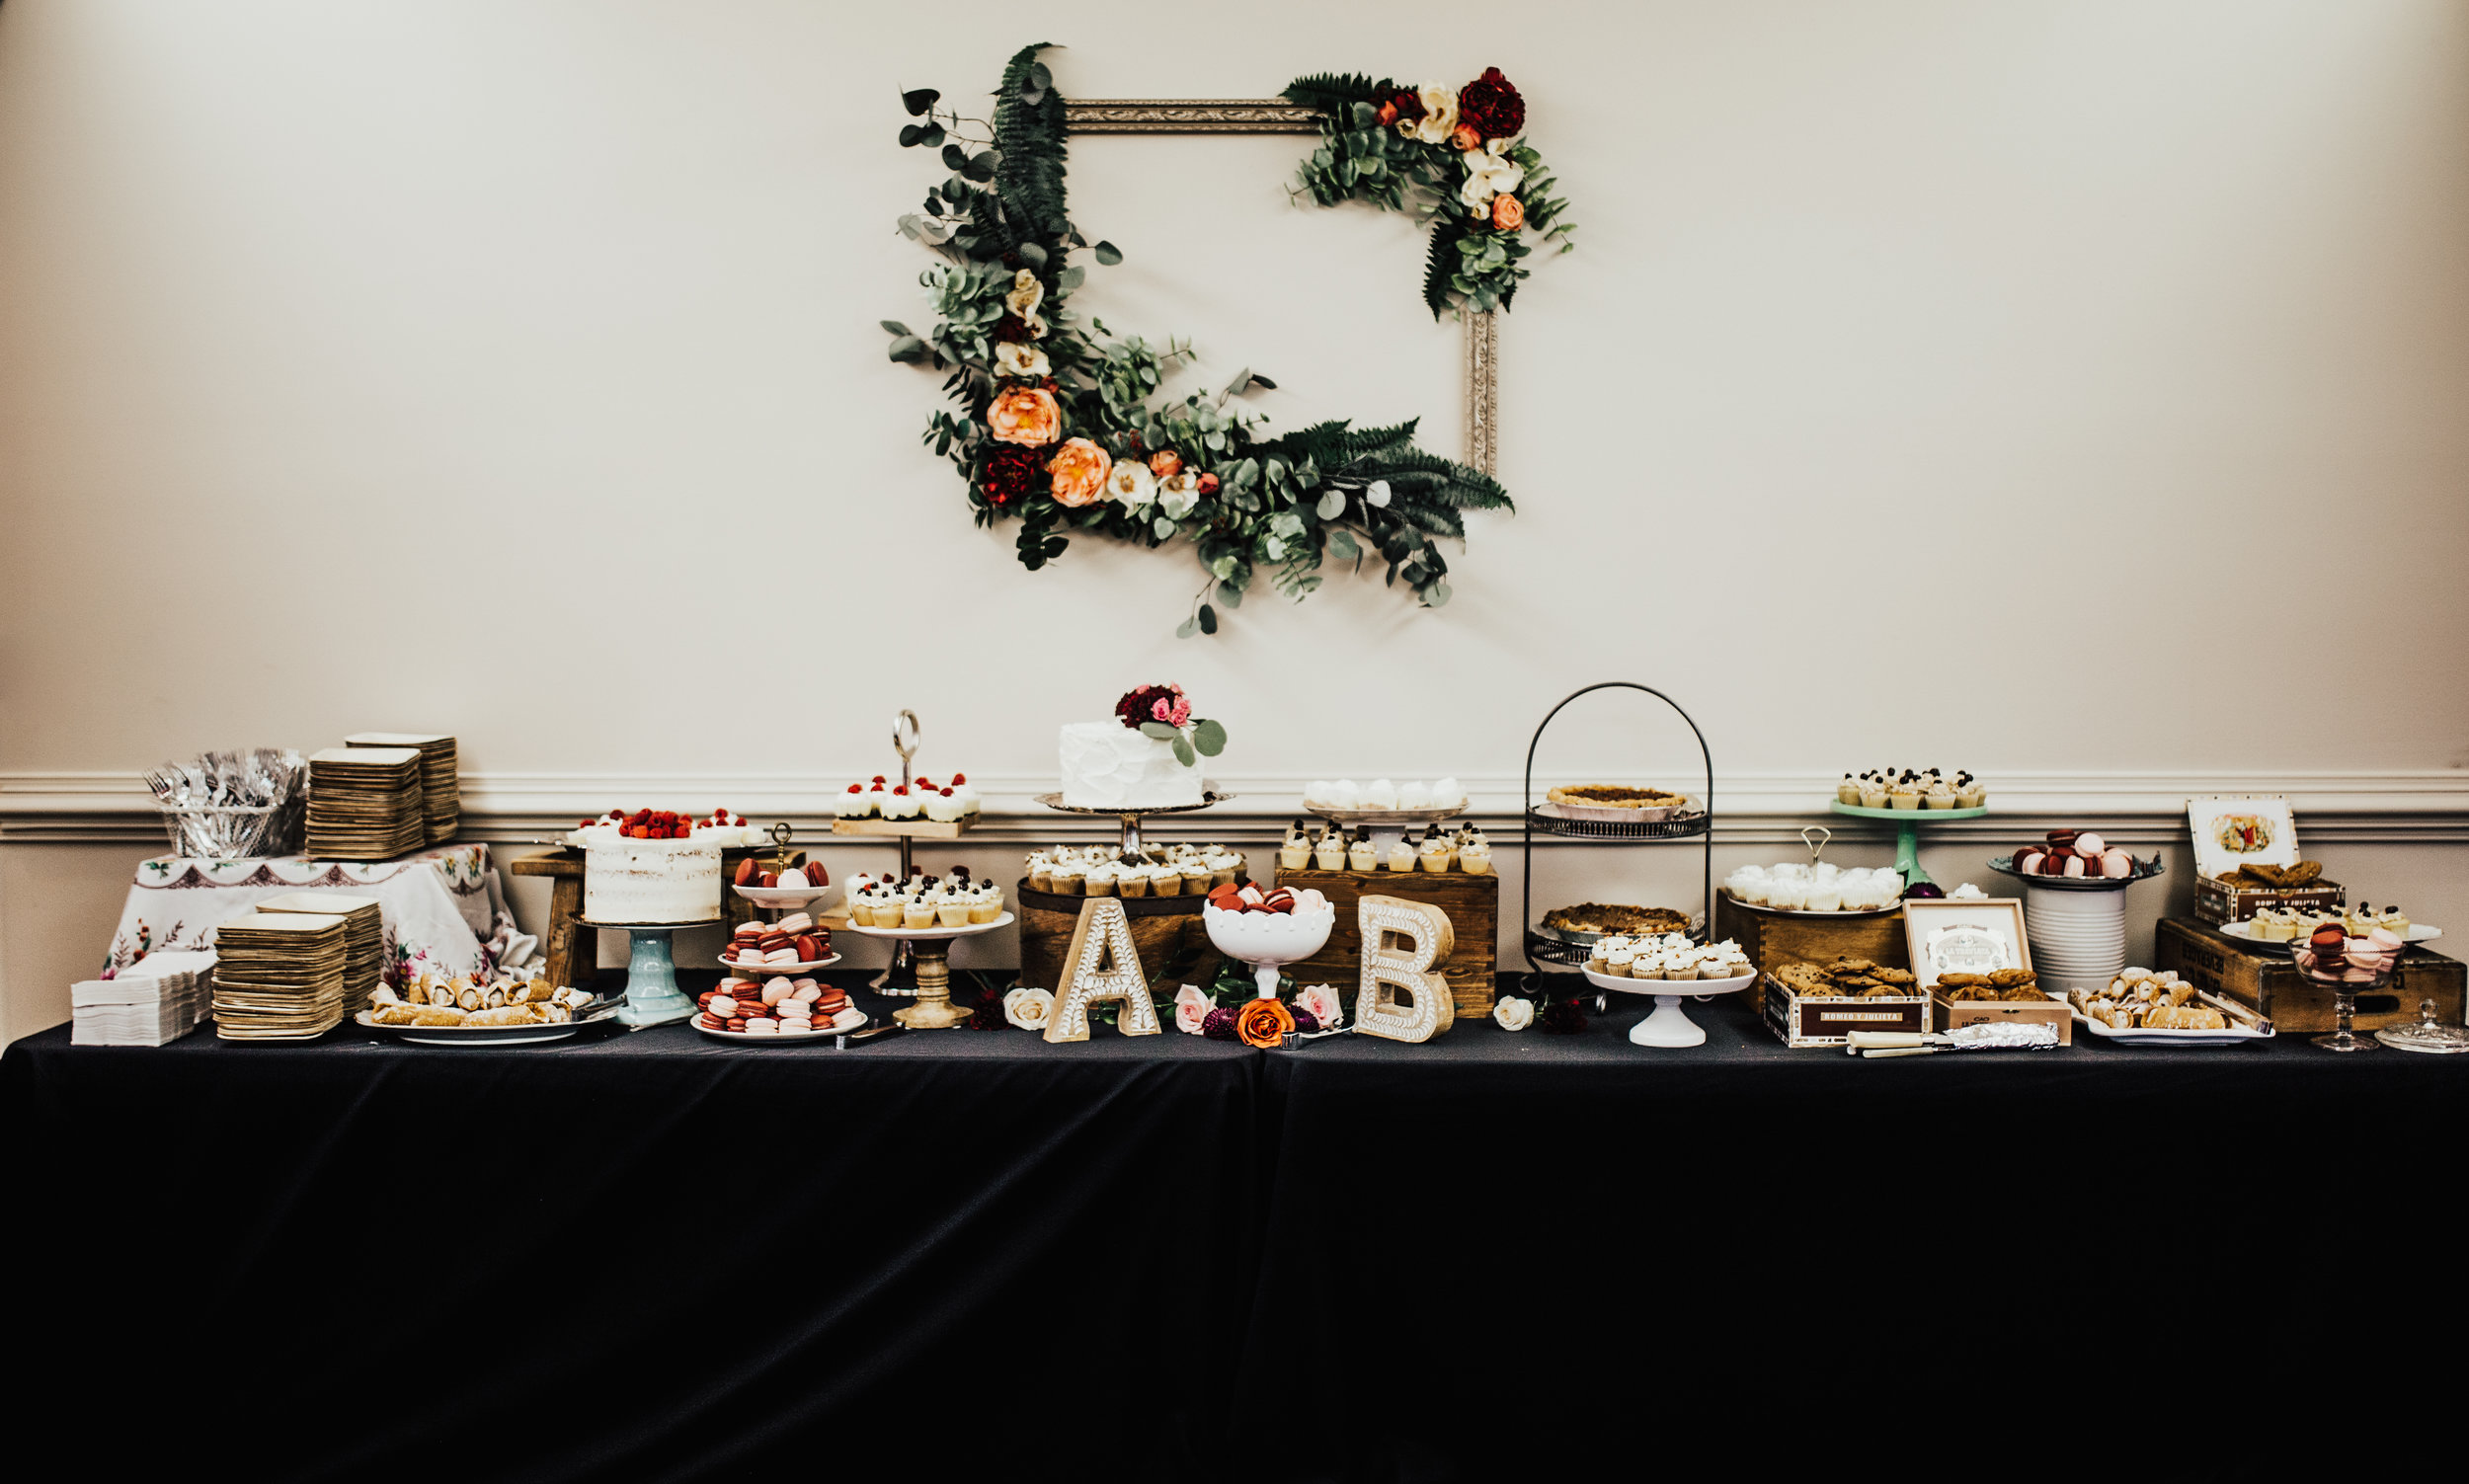 Basically every single person that rounded the corner and saw this dessert table gasped.